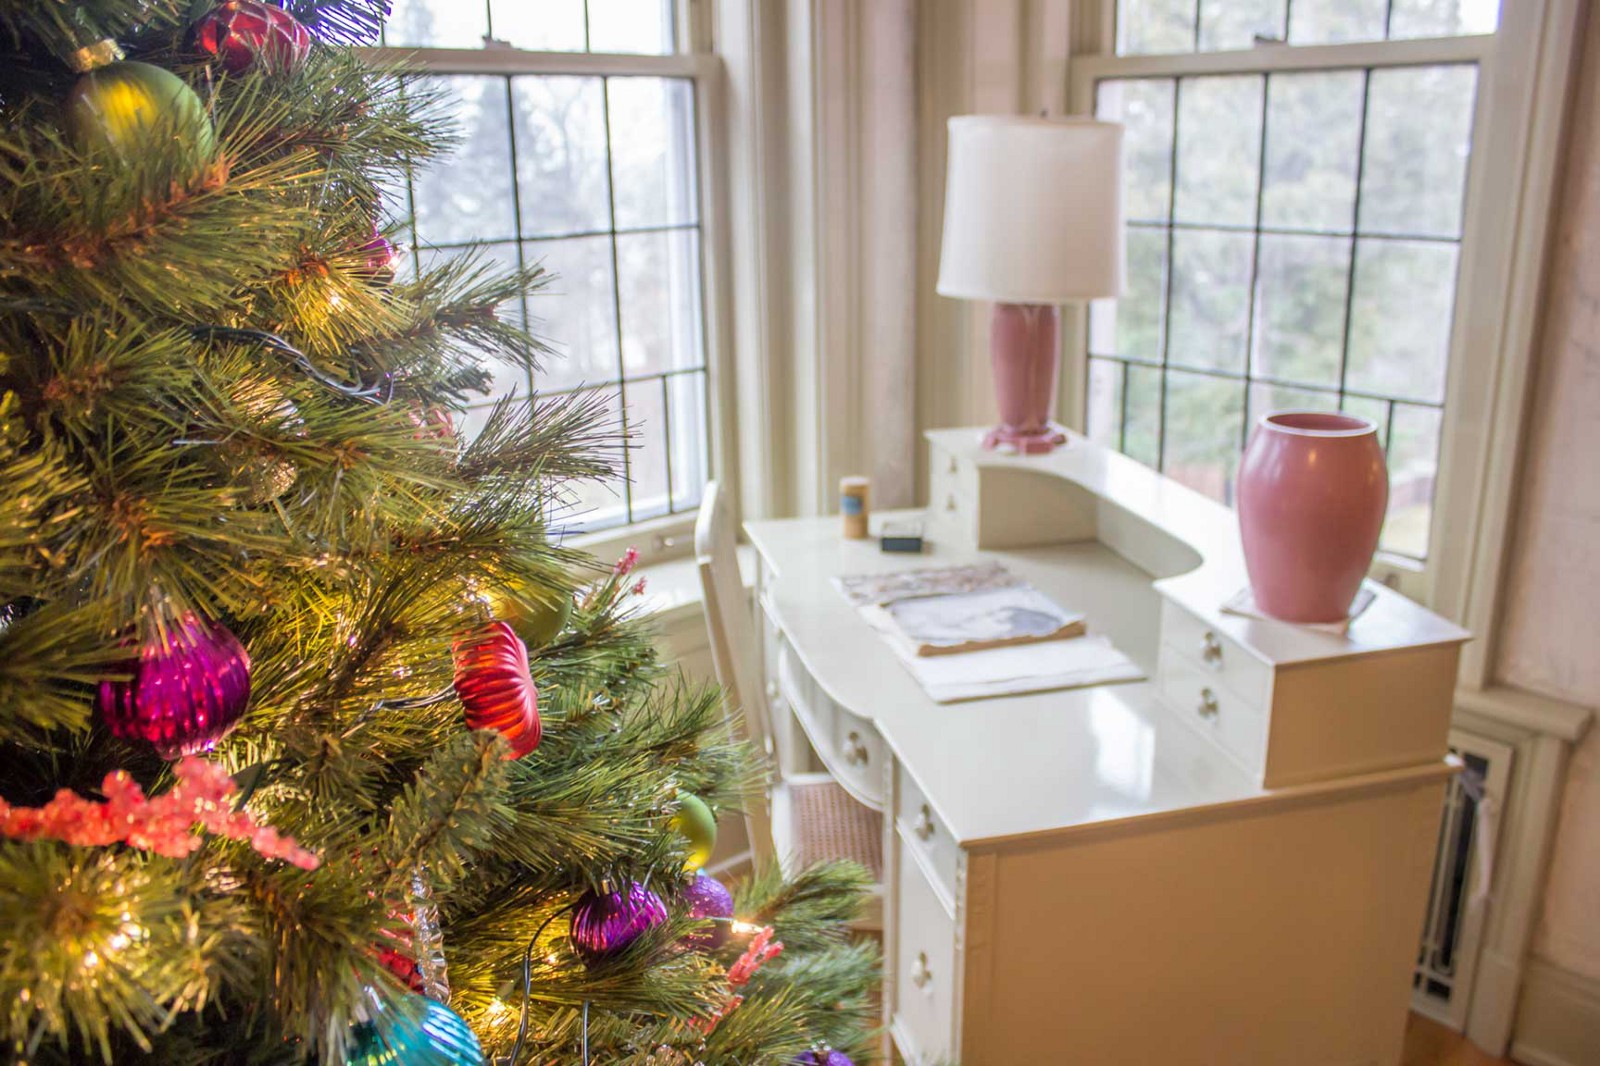 7 Duluth Winter Village Tips The Glensheen Collection